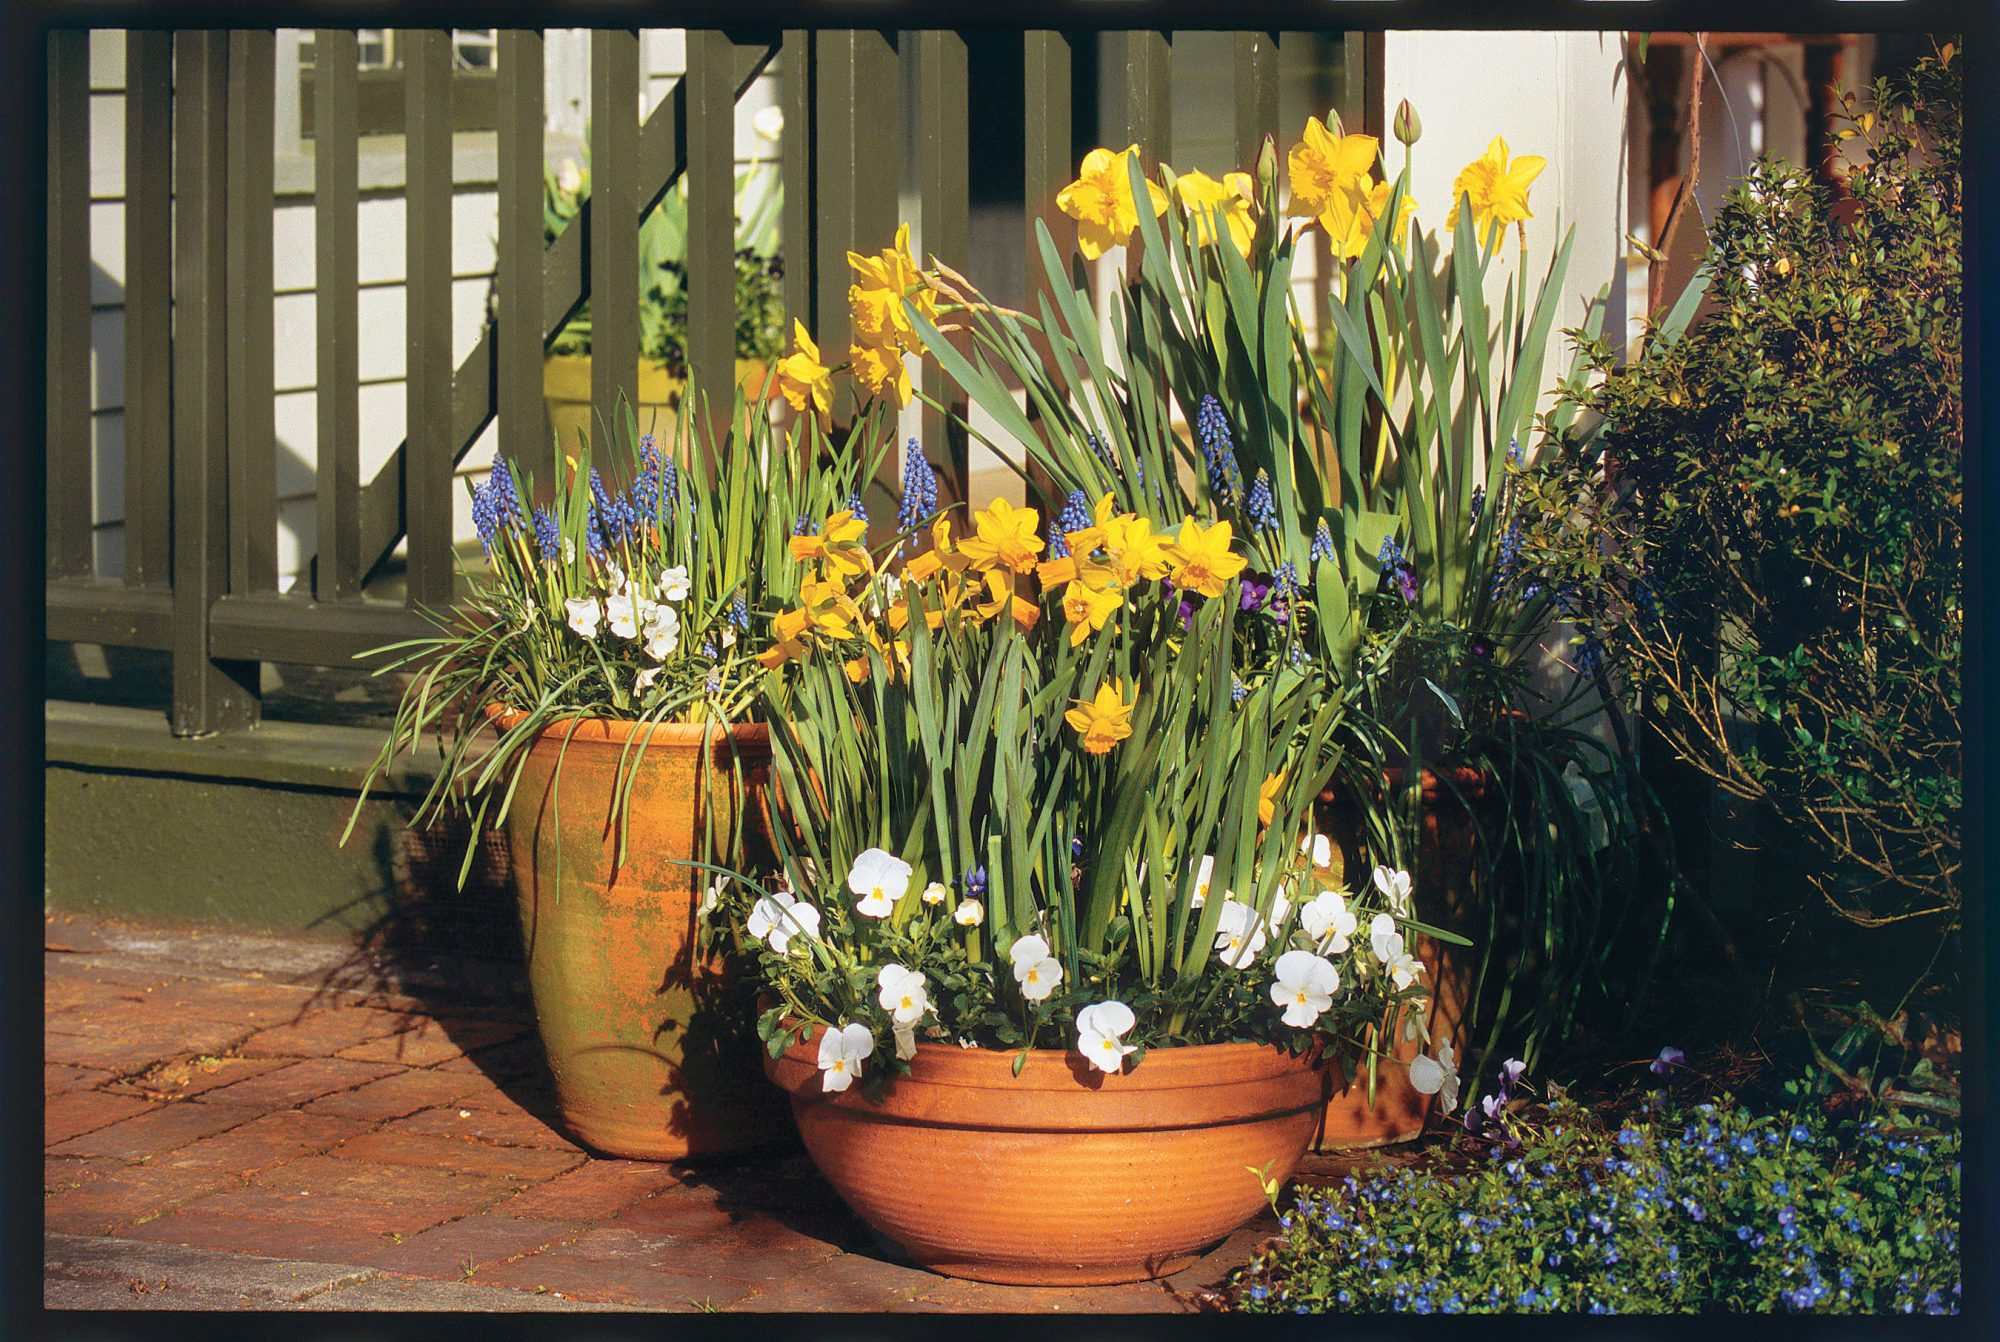 Daffodils & Grape Hyacinth